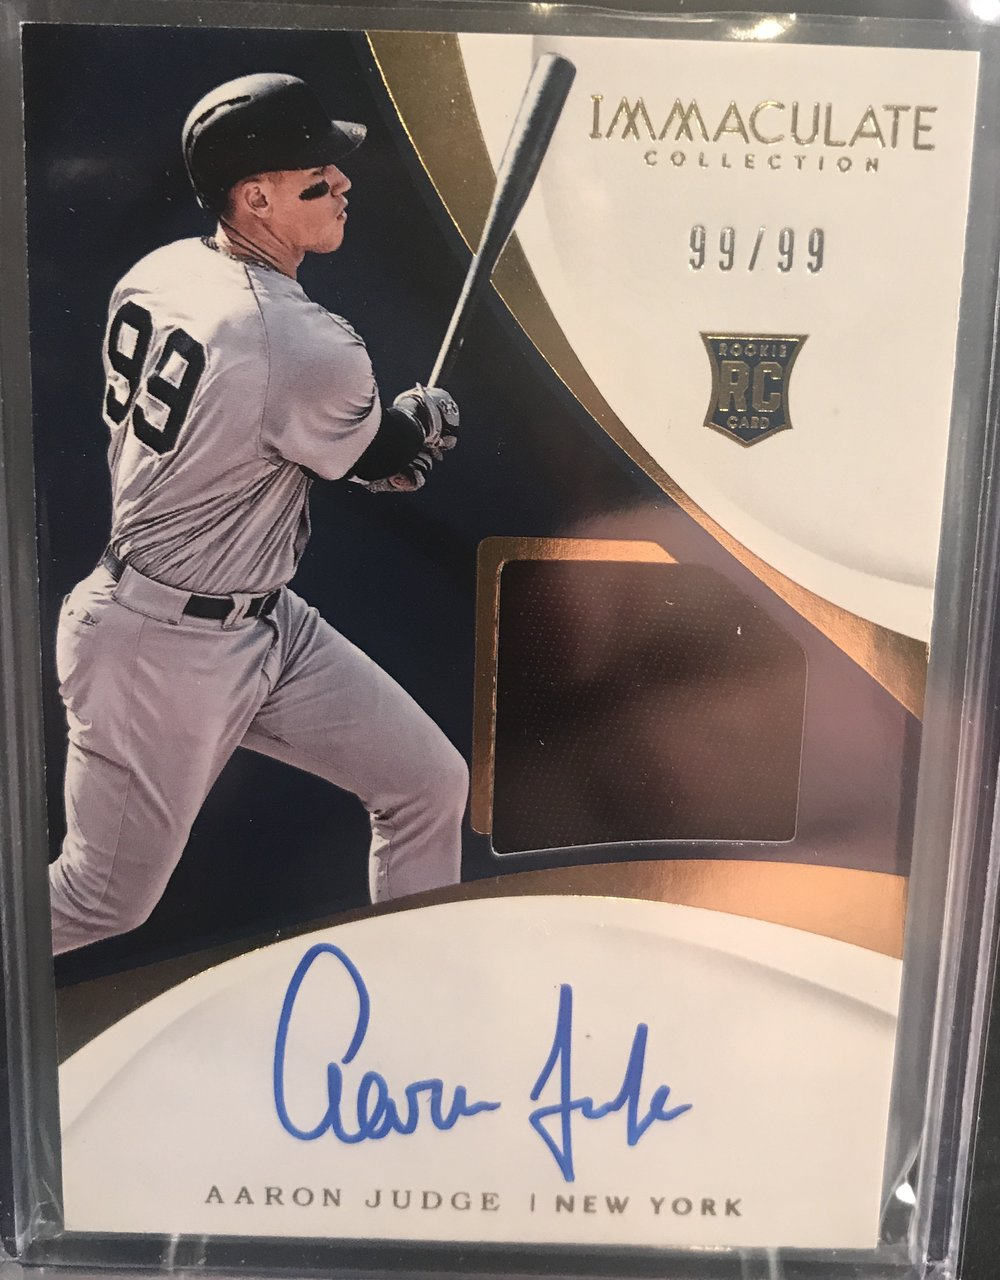 2017 Panini Immaculate Materials Aaron Judge Auto #99/99 JERSEY #!